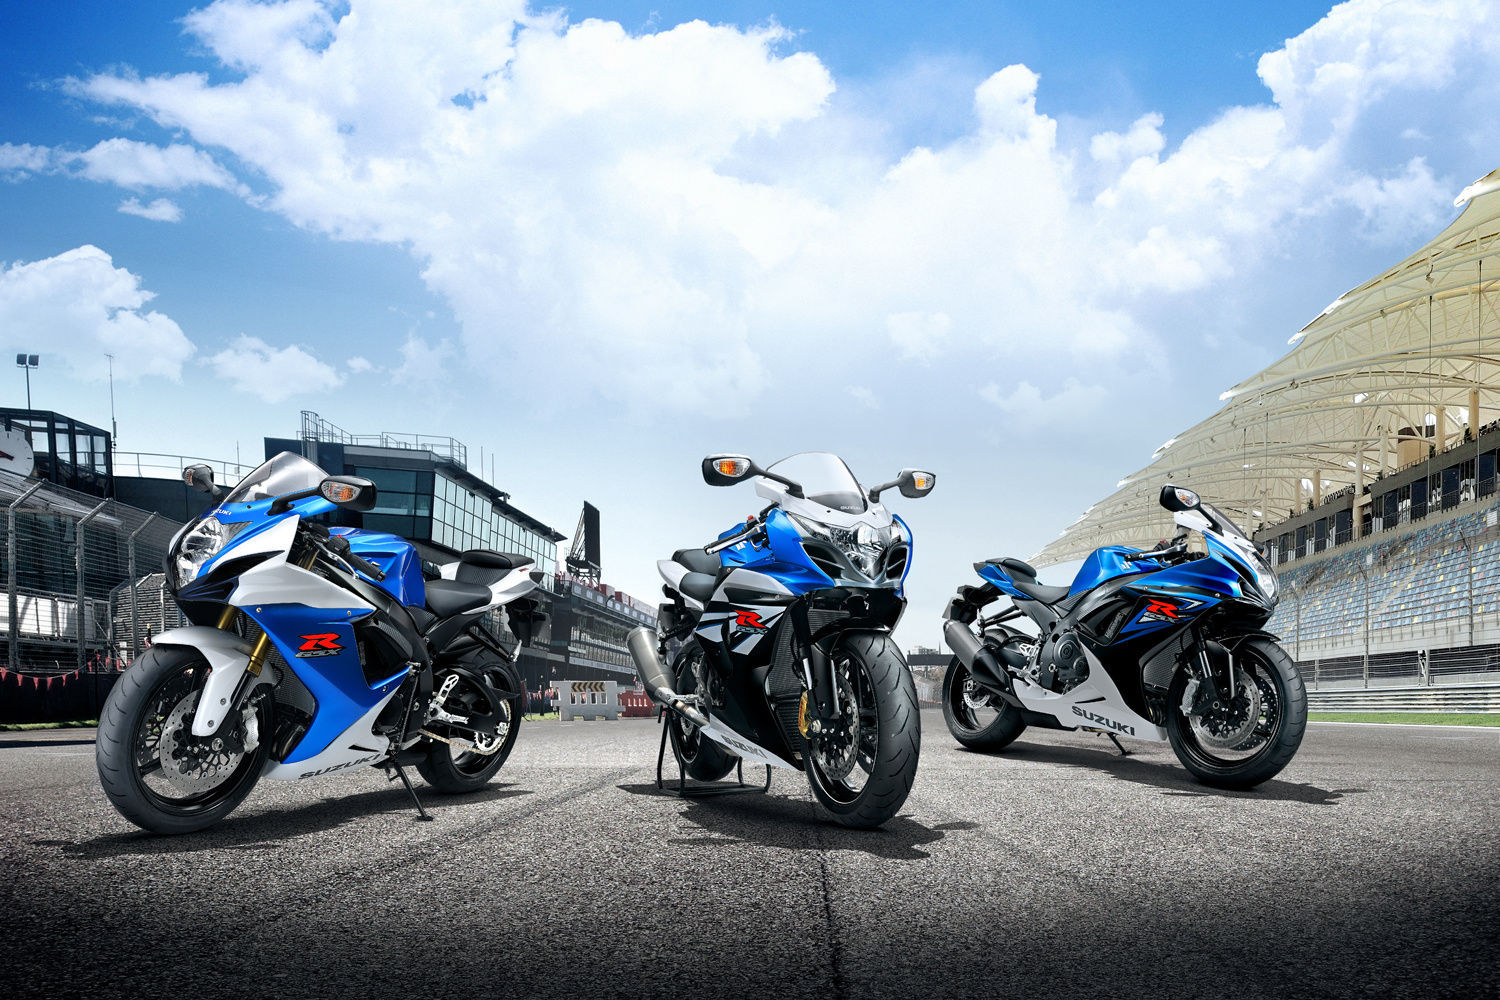 2014 Suzuki GSX-R1000 | The GSXR line-up